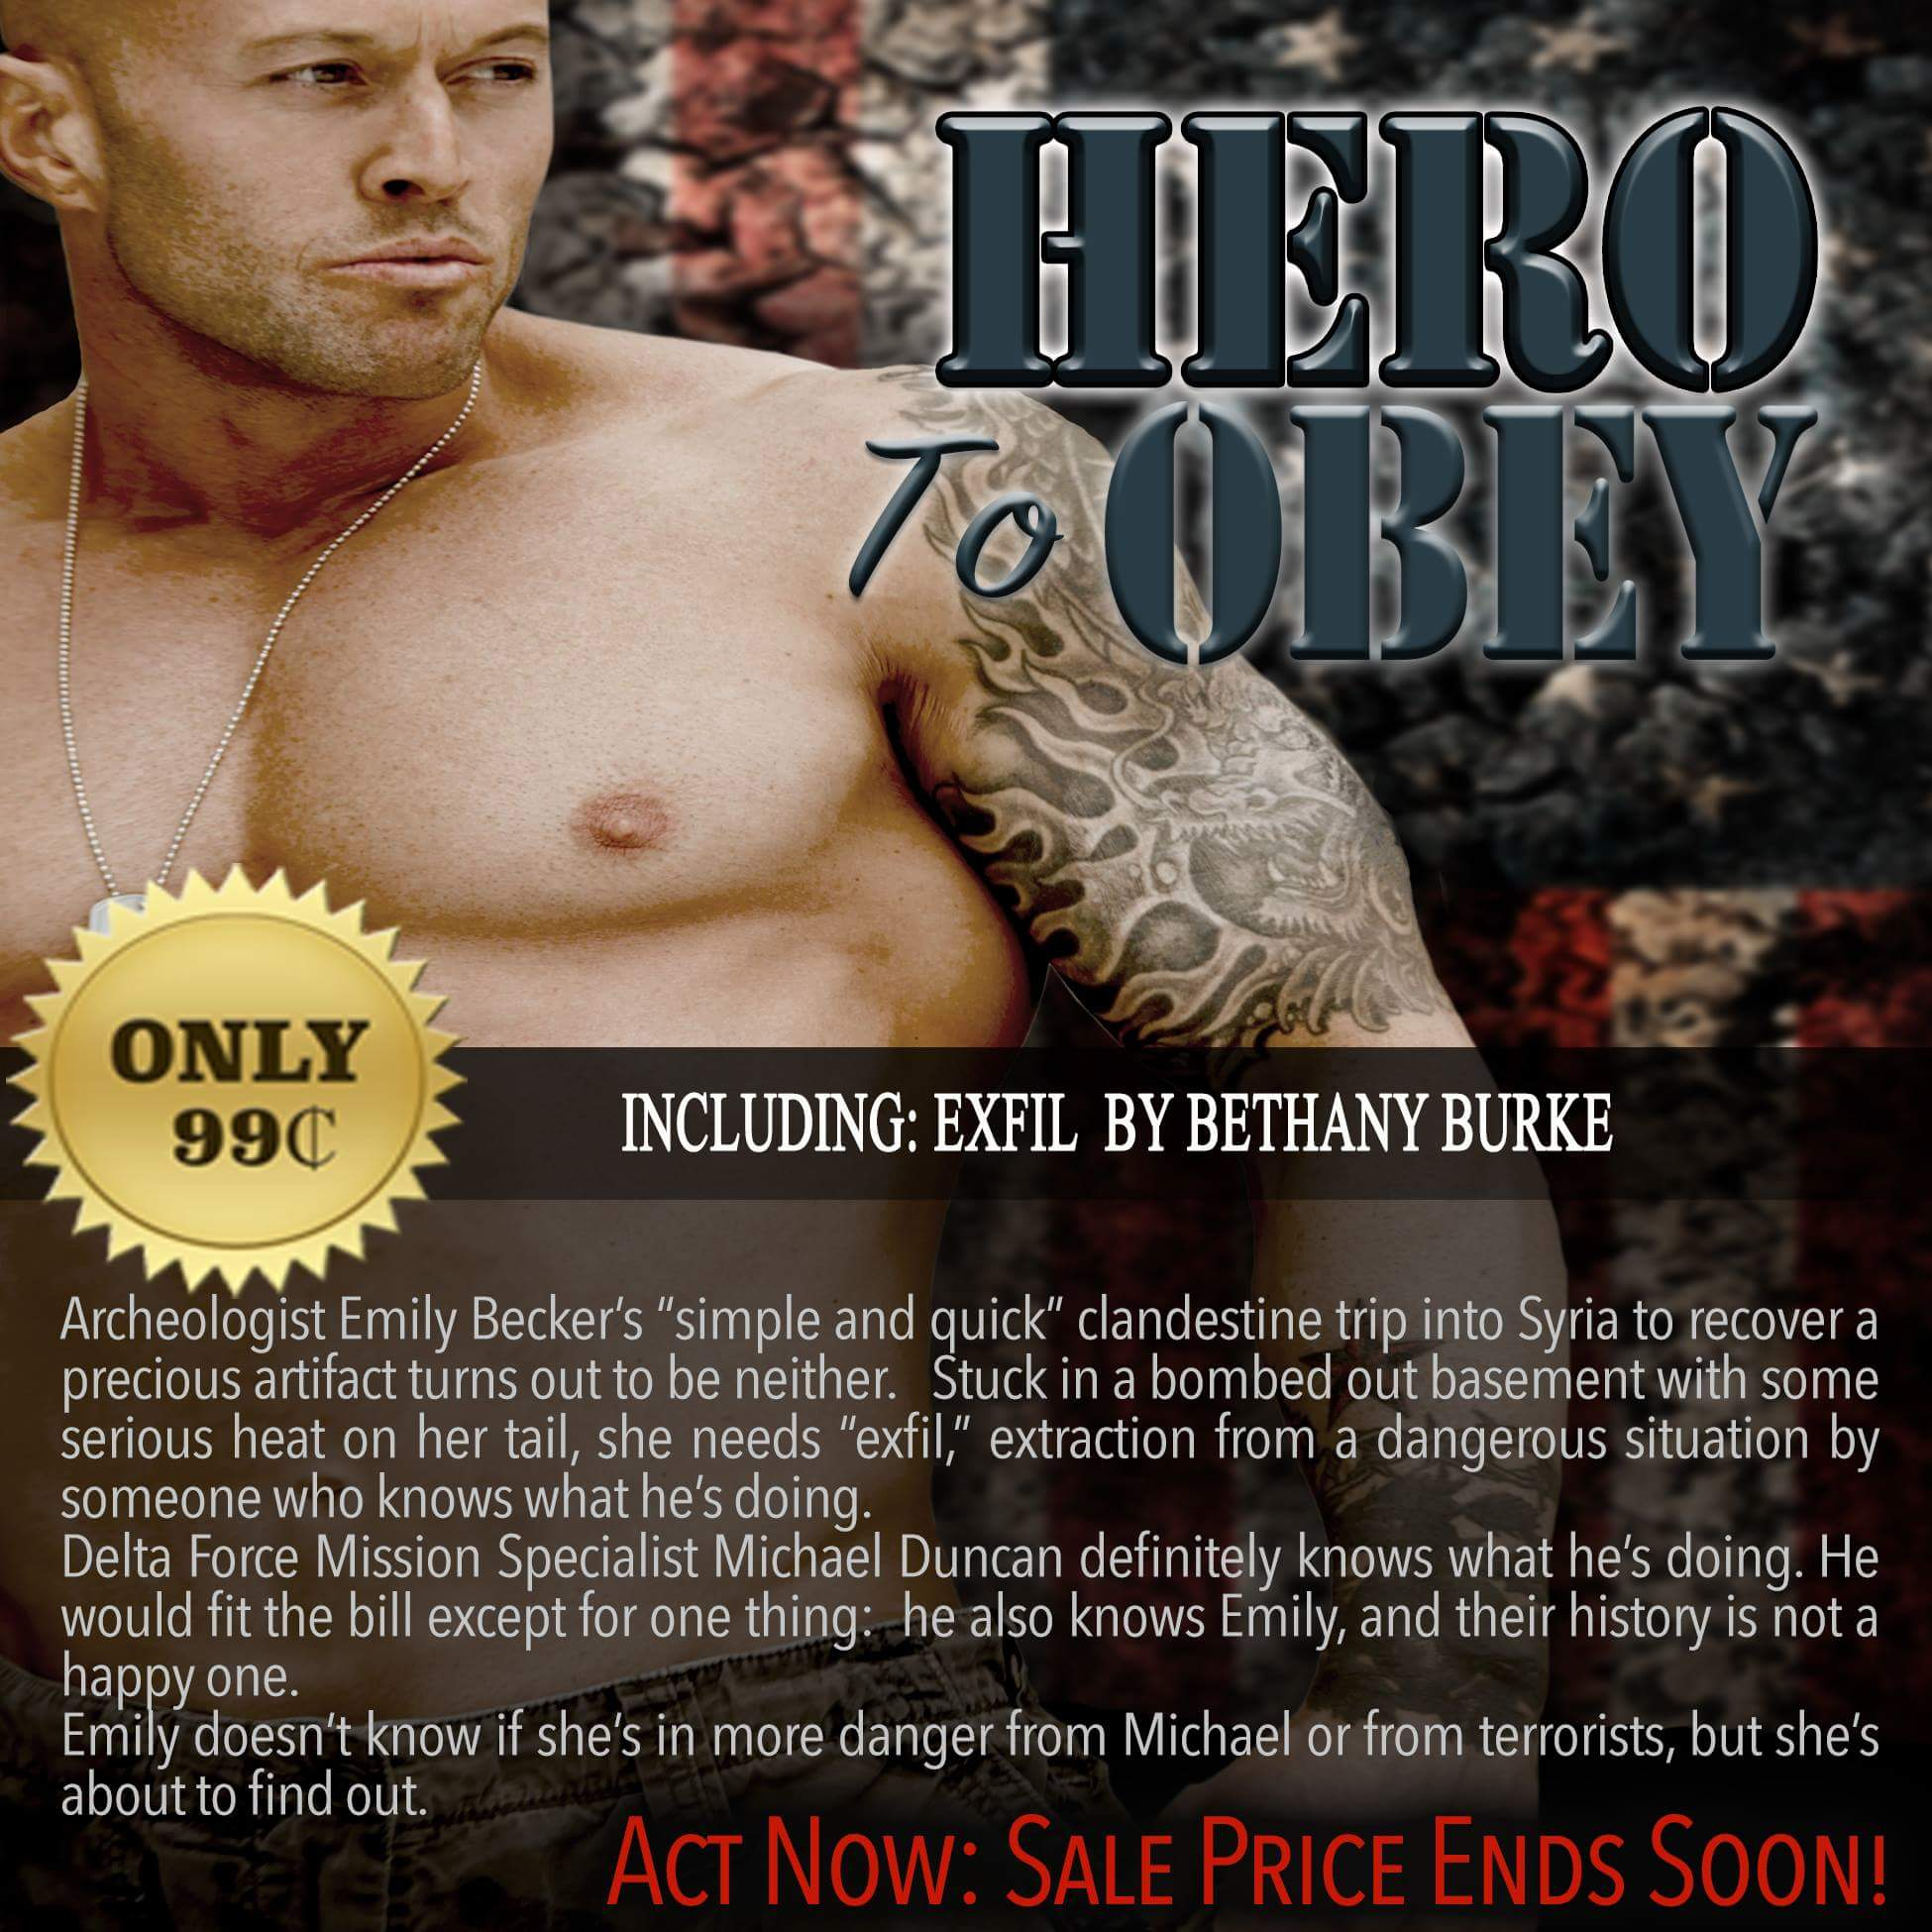 Hero To Obey Book Cover Model Actor John Joseph Quinlan by Bethany Burke #JohnQuinlan #Hero2obey